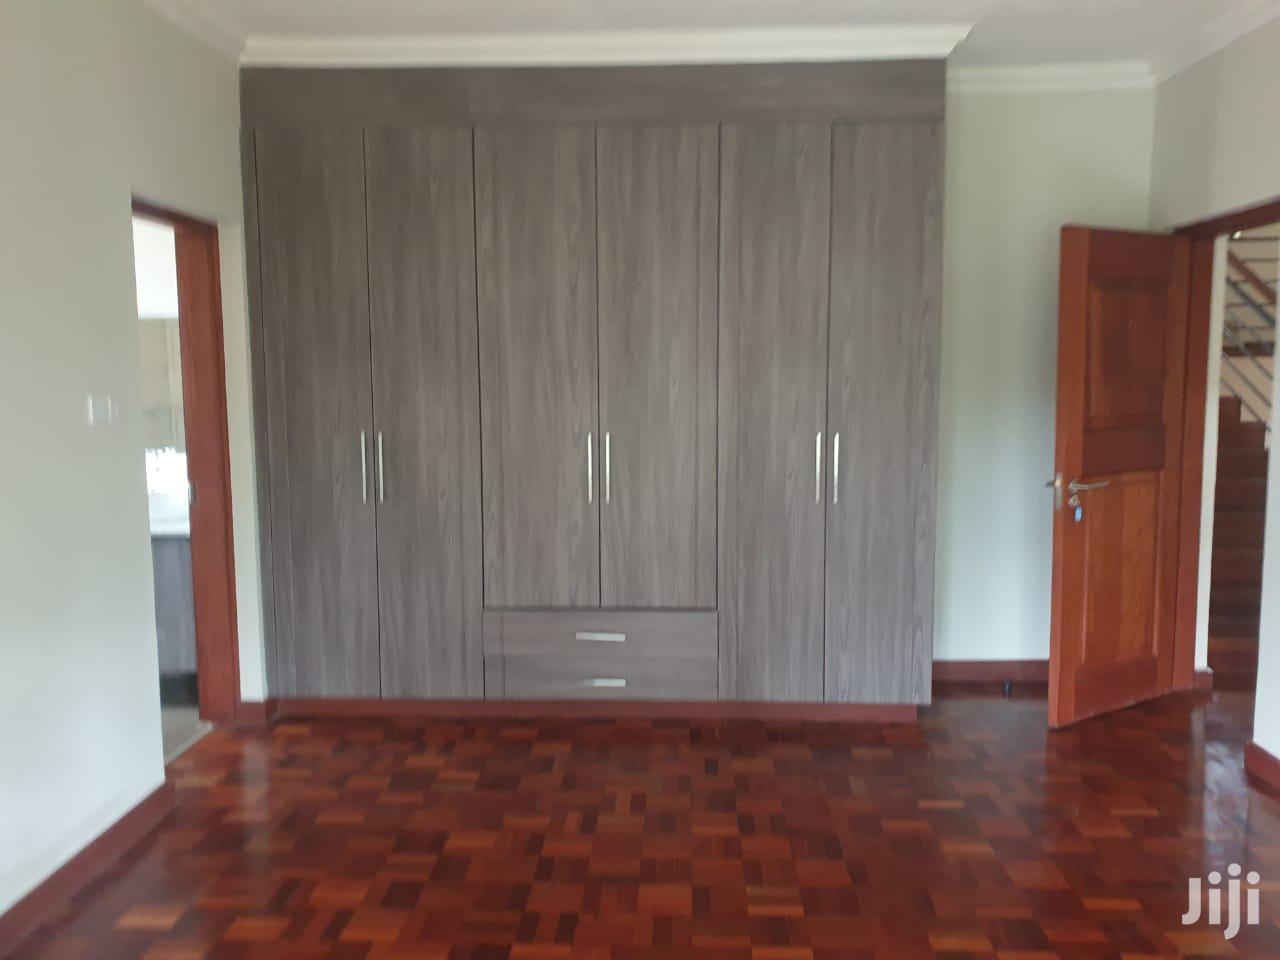 You Cant Miss This One! Kitisuru Five Bedroom Townhouse. | Houses & Apartments For Rent for sale in Kitisuru, Nairobi, Kenya